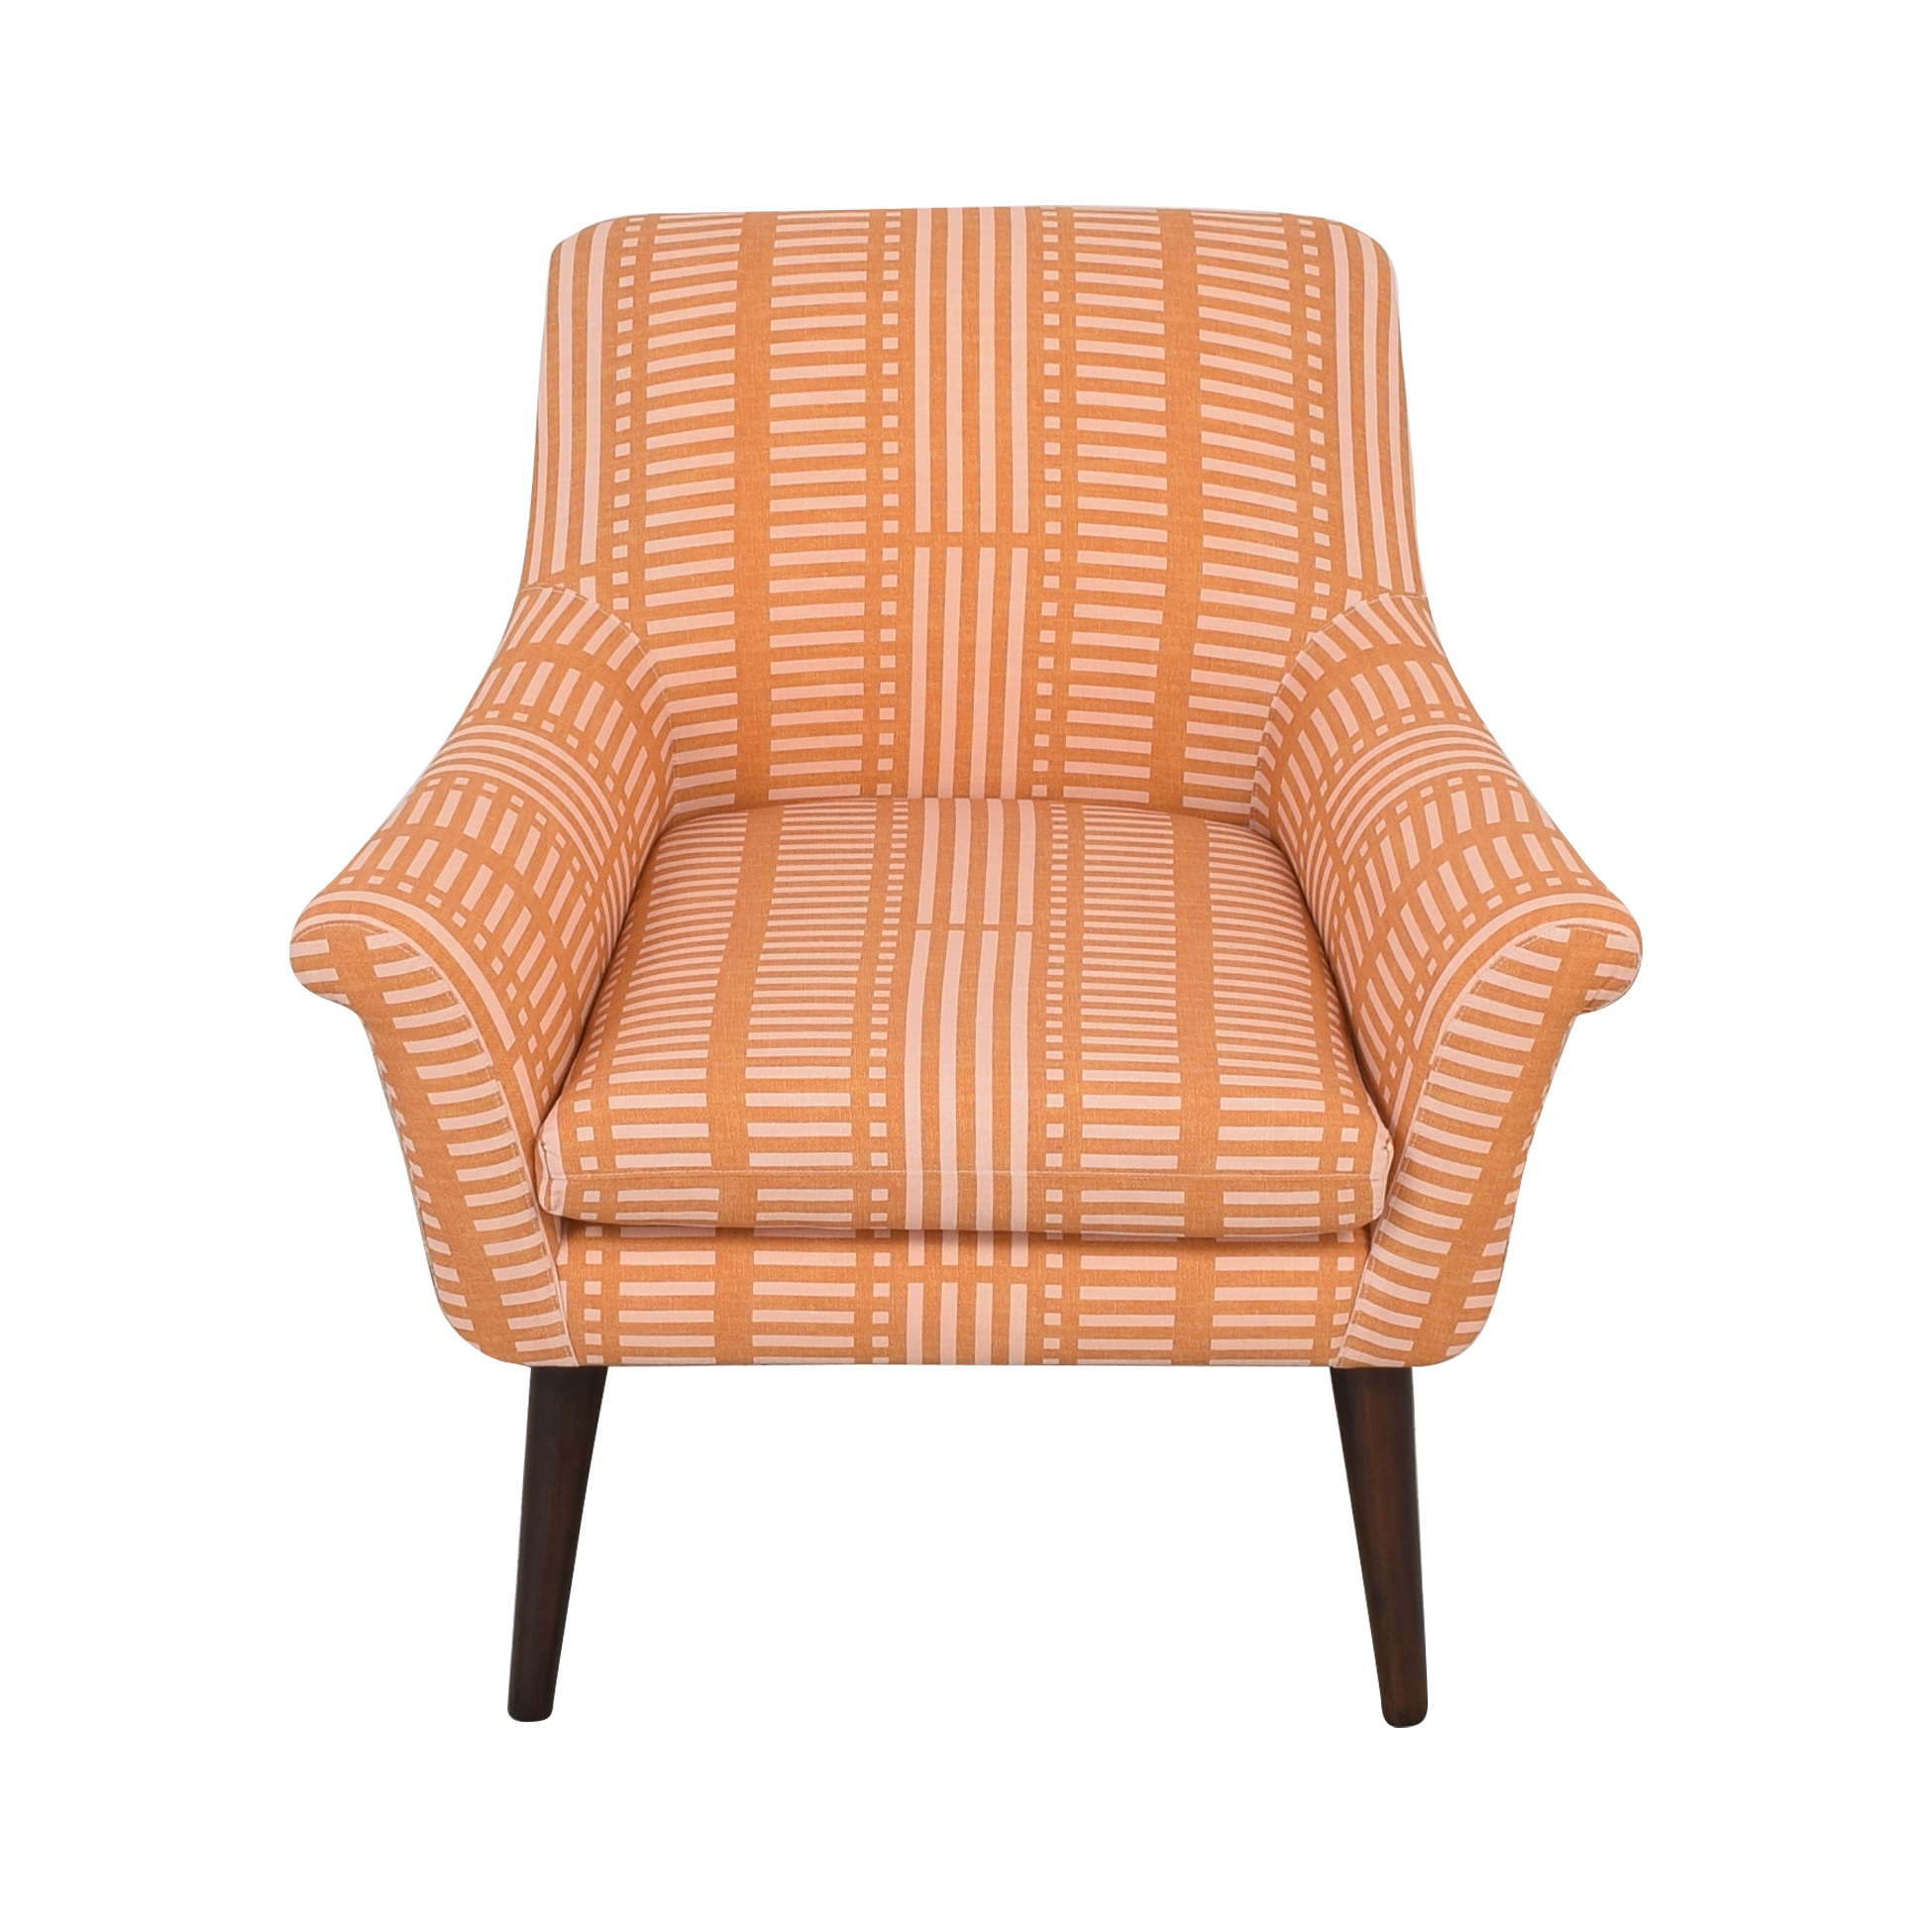 The Inside Cocktail Chair sale